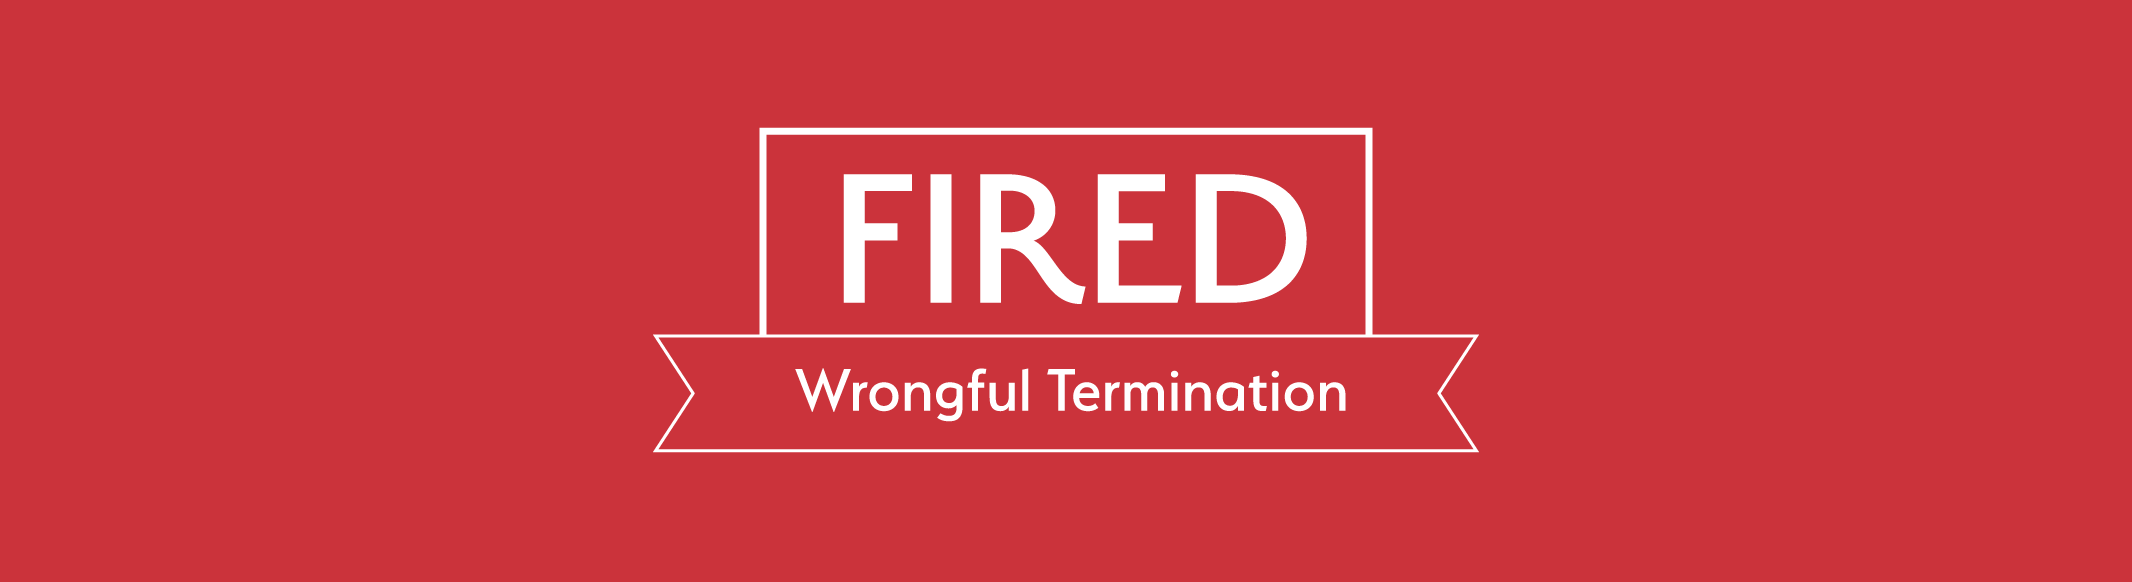 Austin Wrongful Termination Lawyer